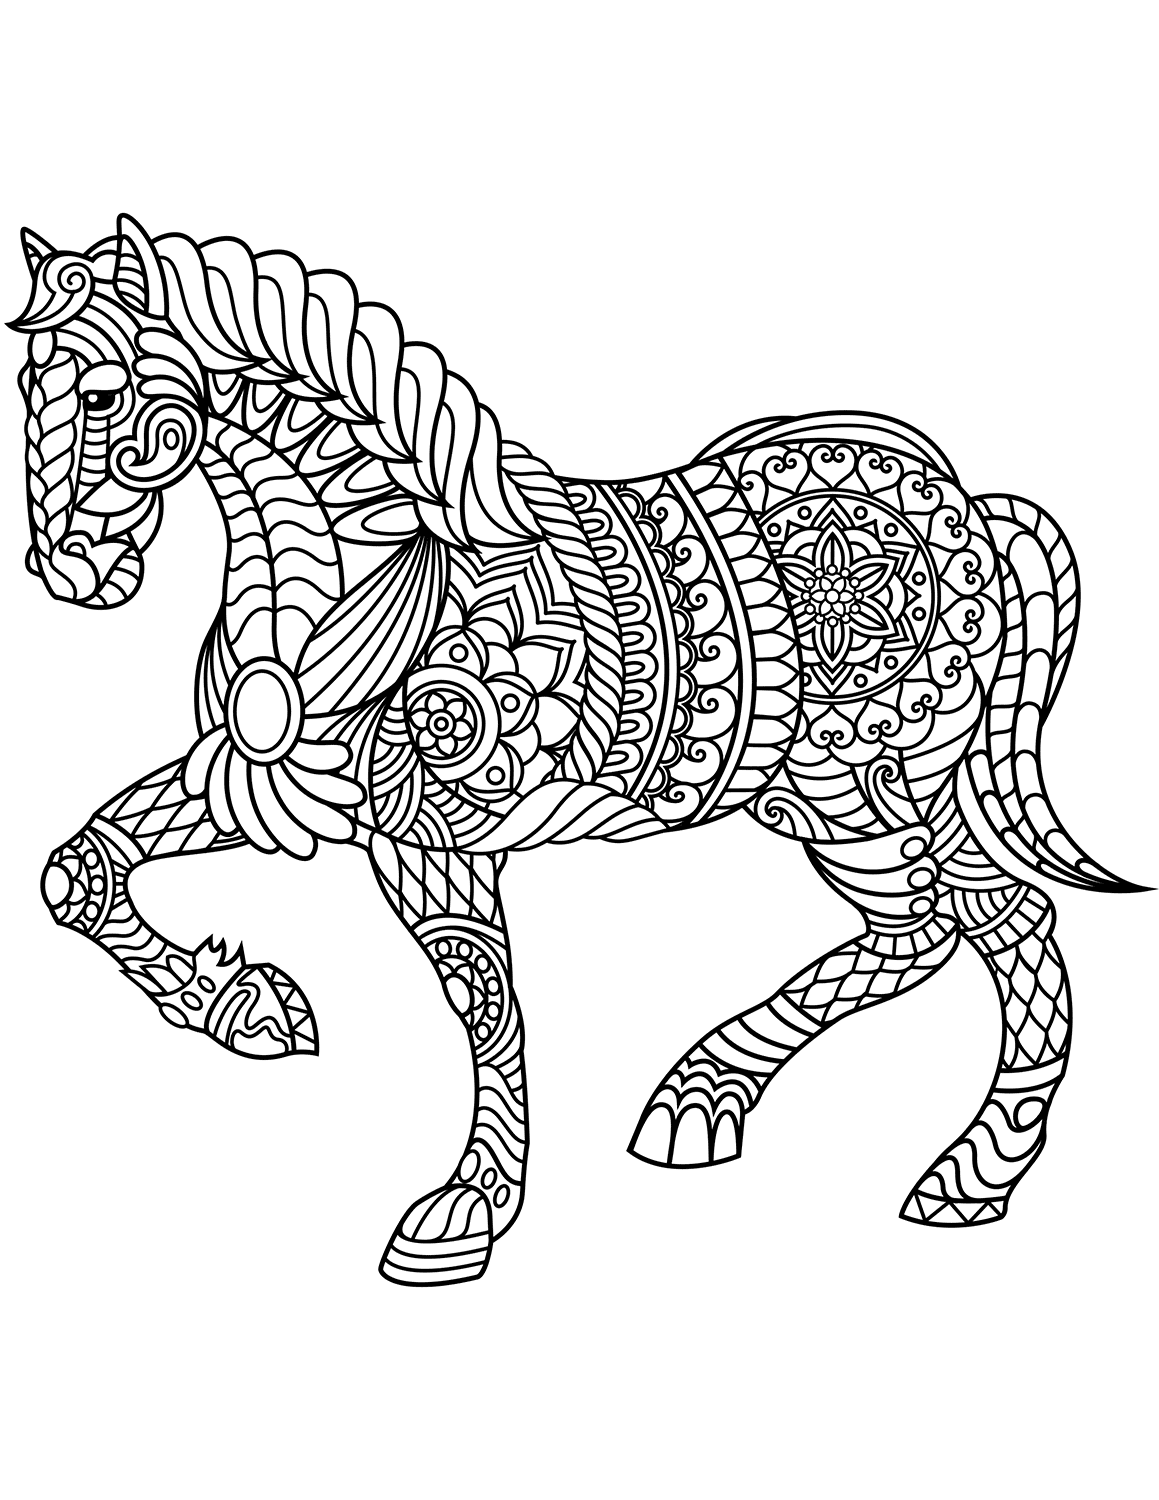 kids horse coloring pages free printable horse coloring pages for kids funsoke pages coloring horse kids